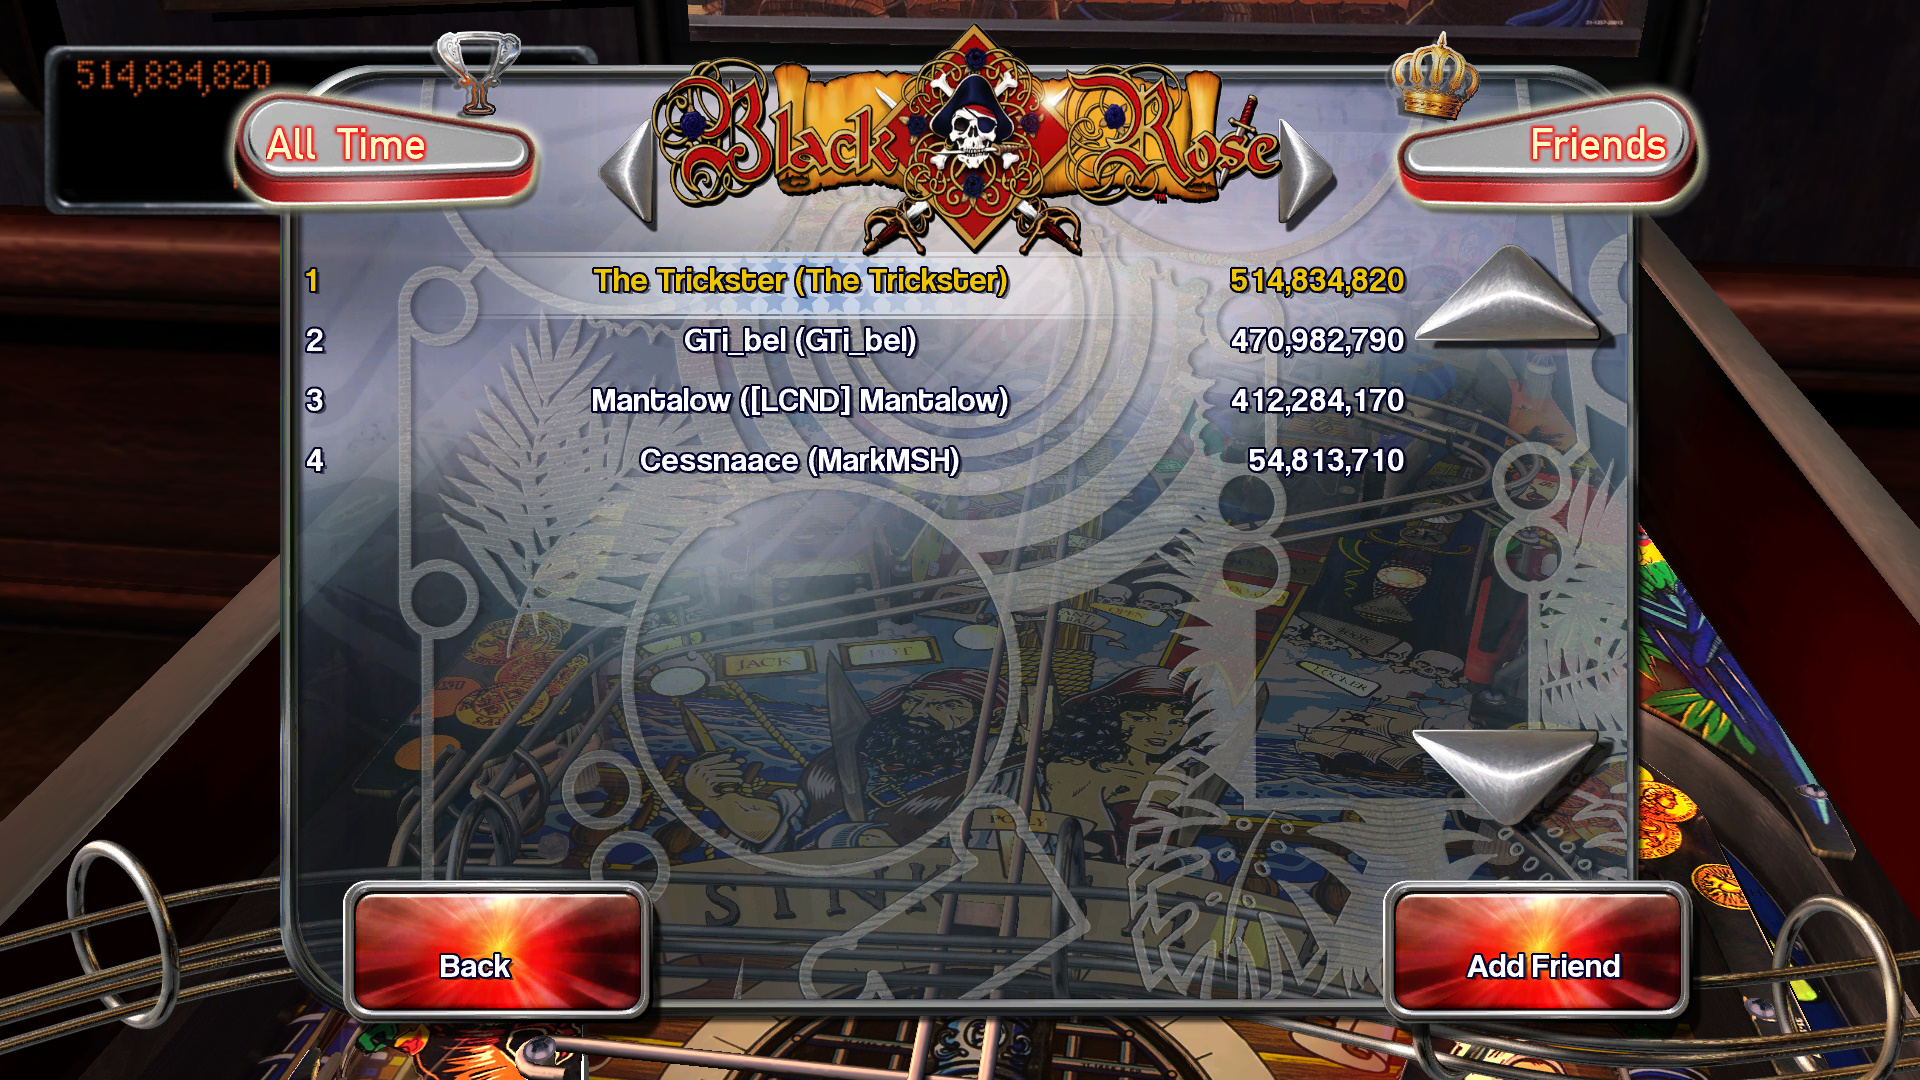 TheTrickster: Pinball Arcade: Black Rose (PC) 514,834,820 points on 2015-11-02 06:47:26